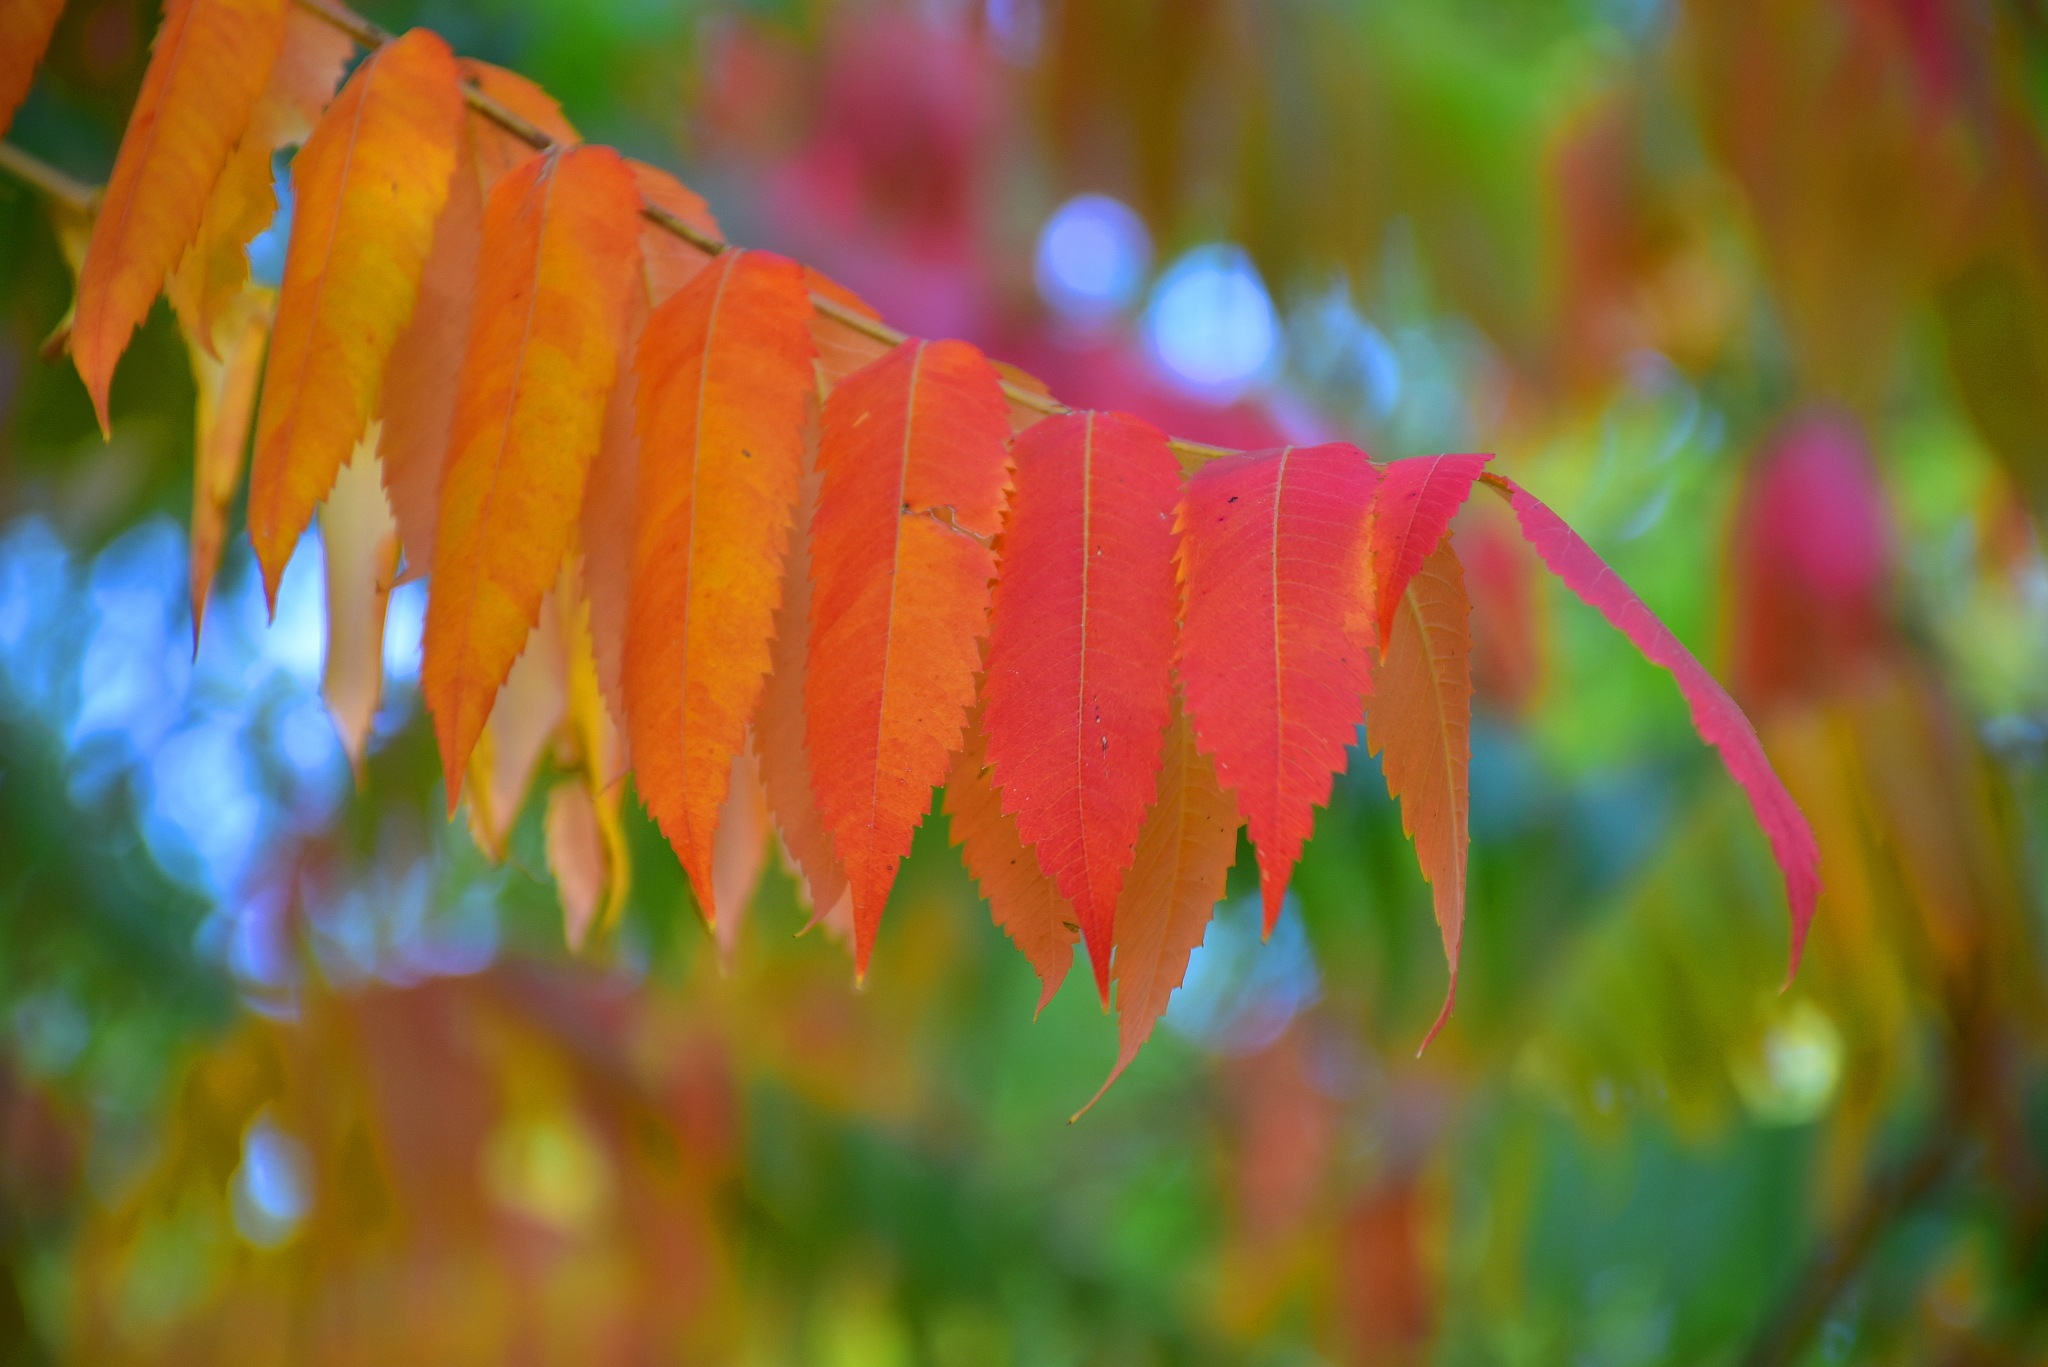 The fantastic colors of autumn by liwesta